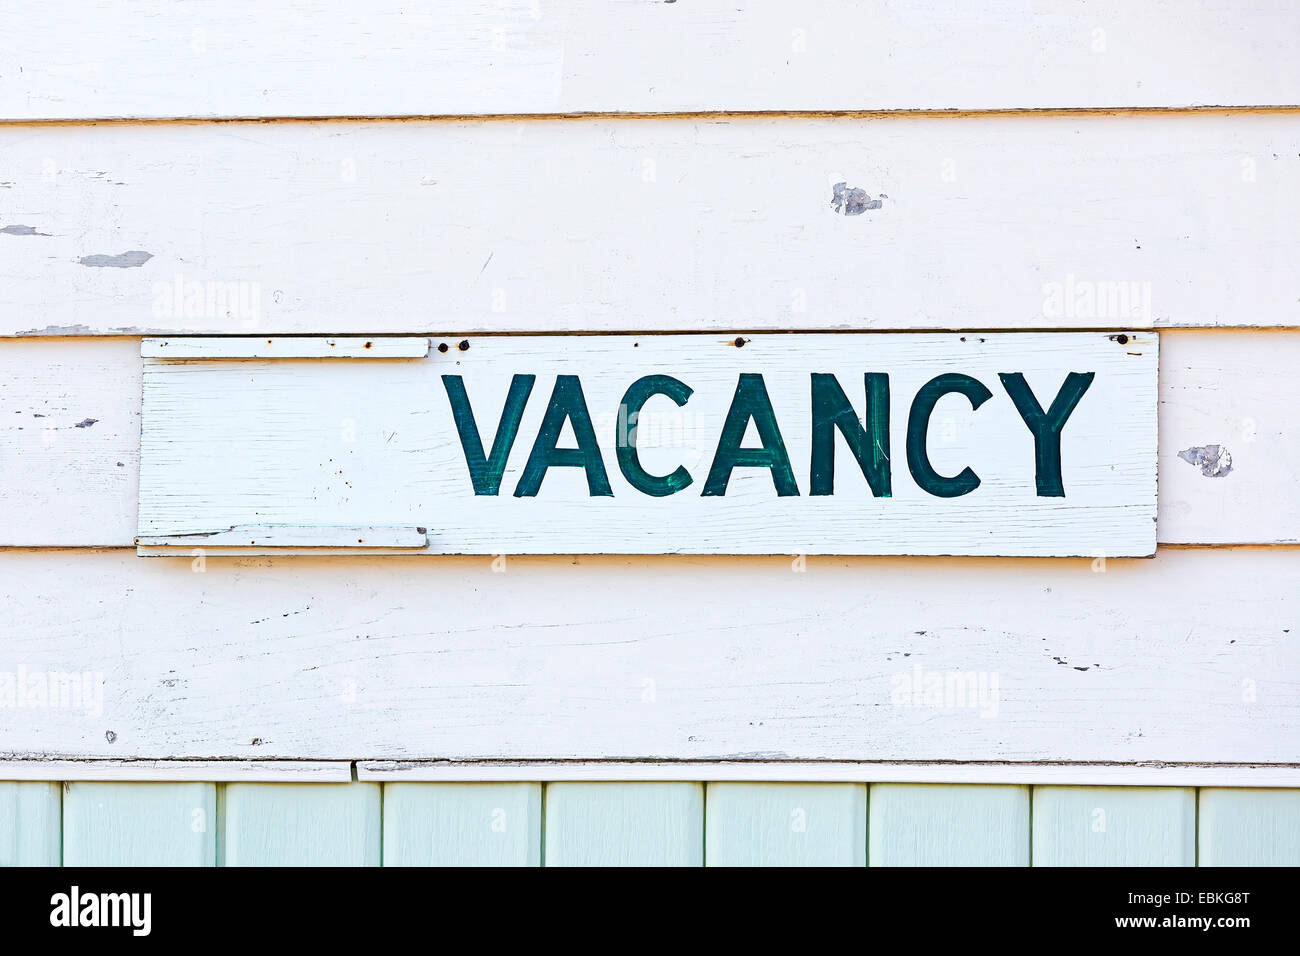 An old fashioned vacancy sign on an old motel. - Stock Image